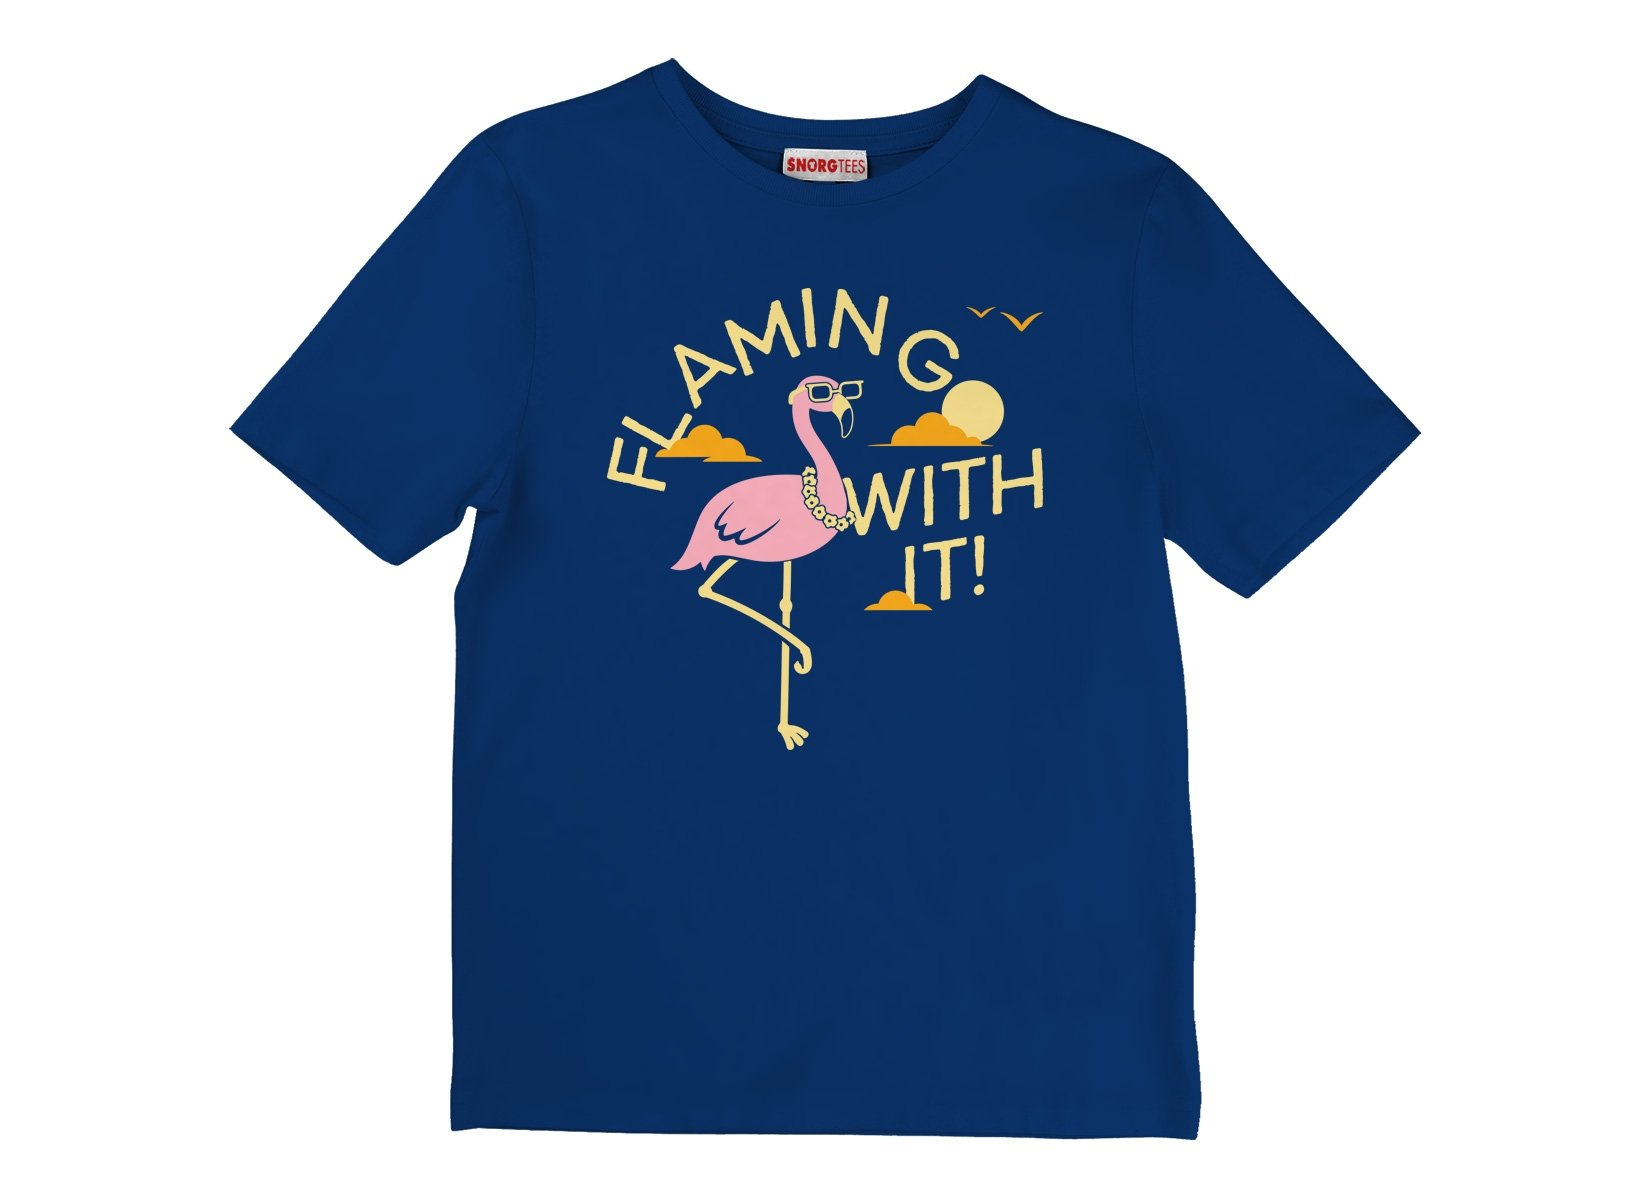 Flamingo With It on Kids T-Shirt